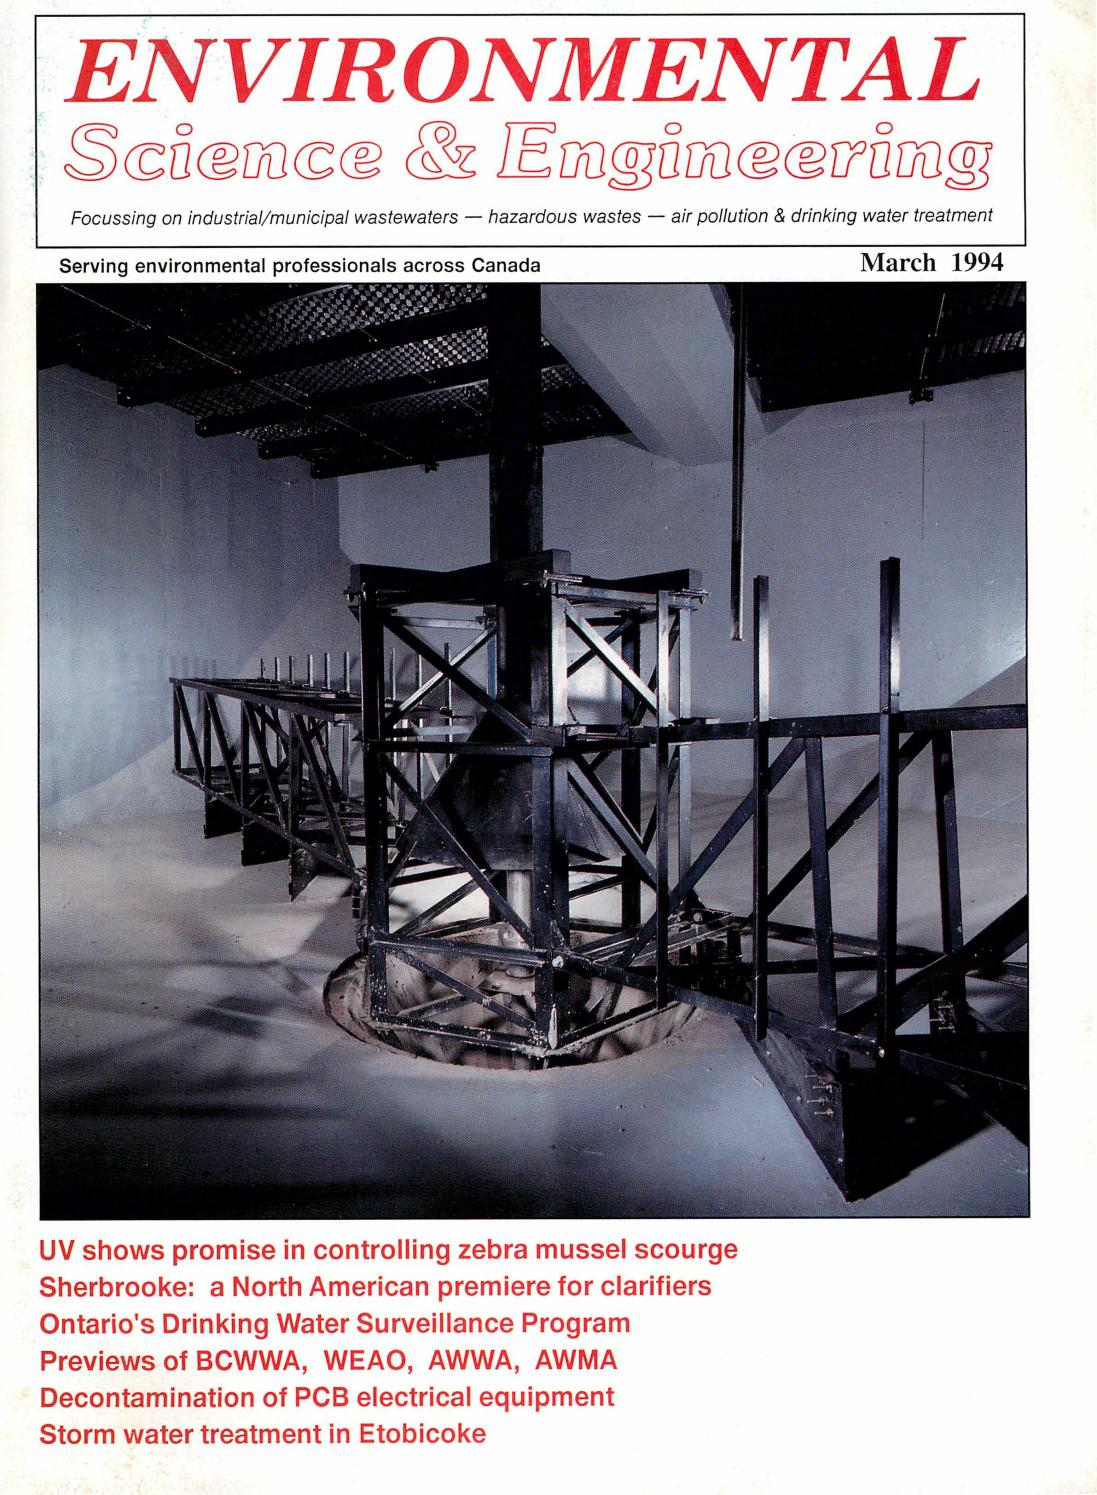 Stupendous Environmental Science Engineering Magazine Esemag March Gamerscity Chair Design For Home Gamerscityorg